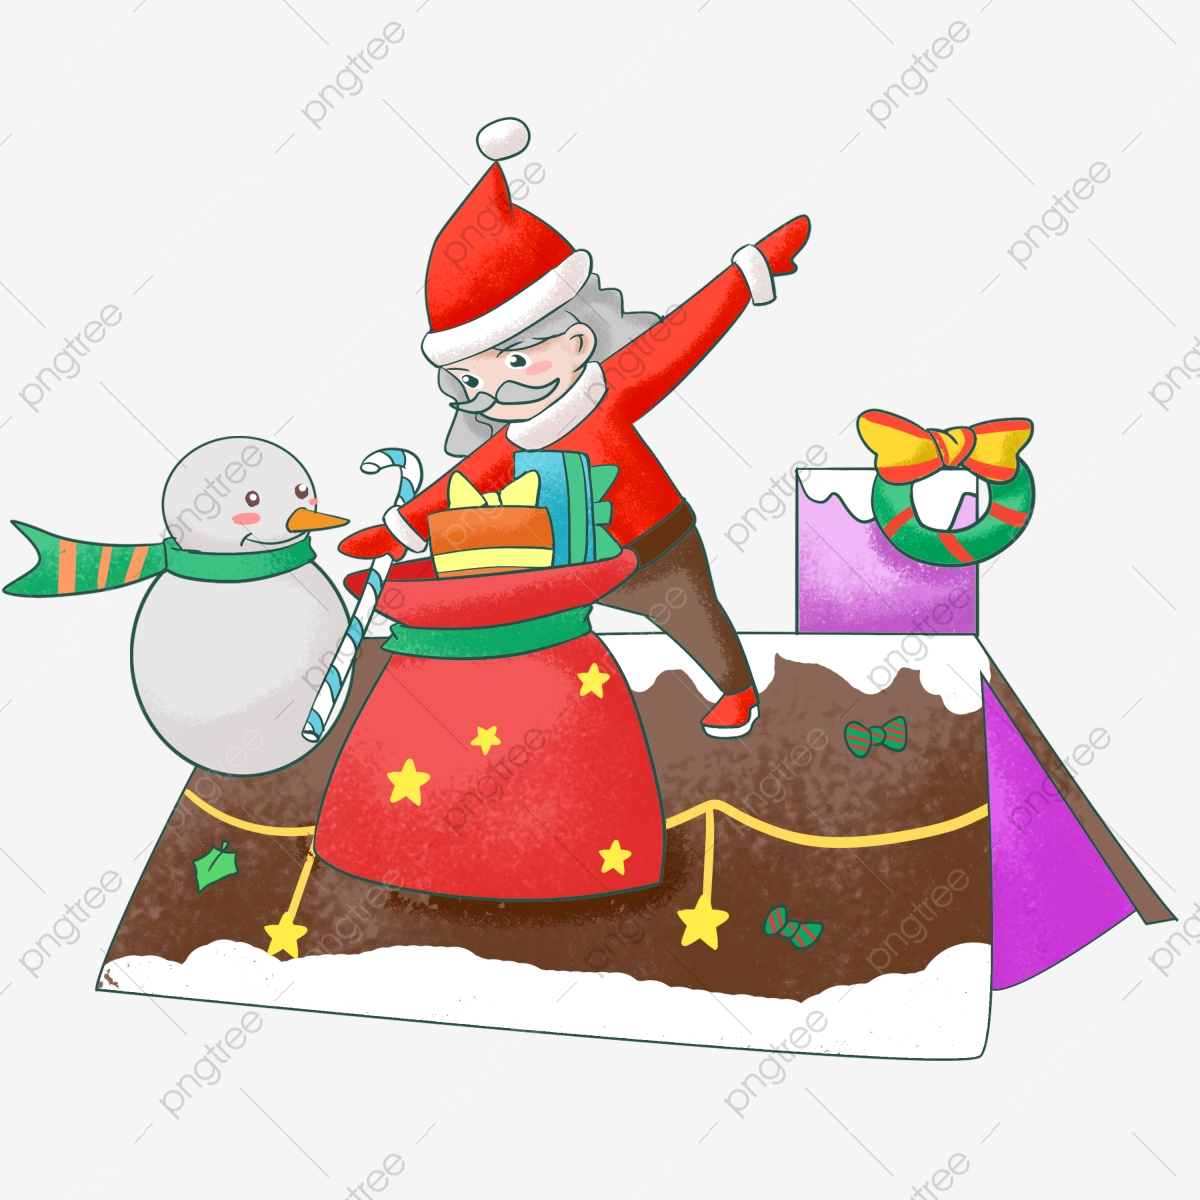 Christmas Giving Clipart.Christmas Christmas Gifts Merry Christmas Santa Claus Gift